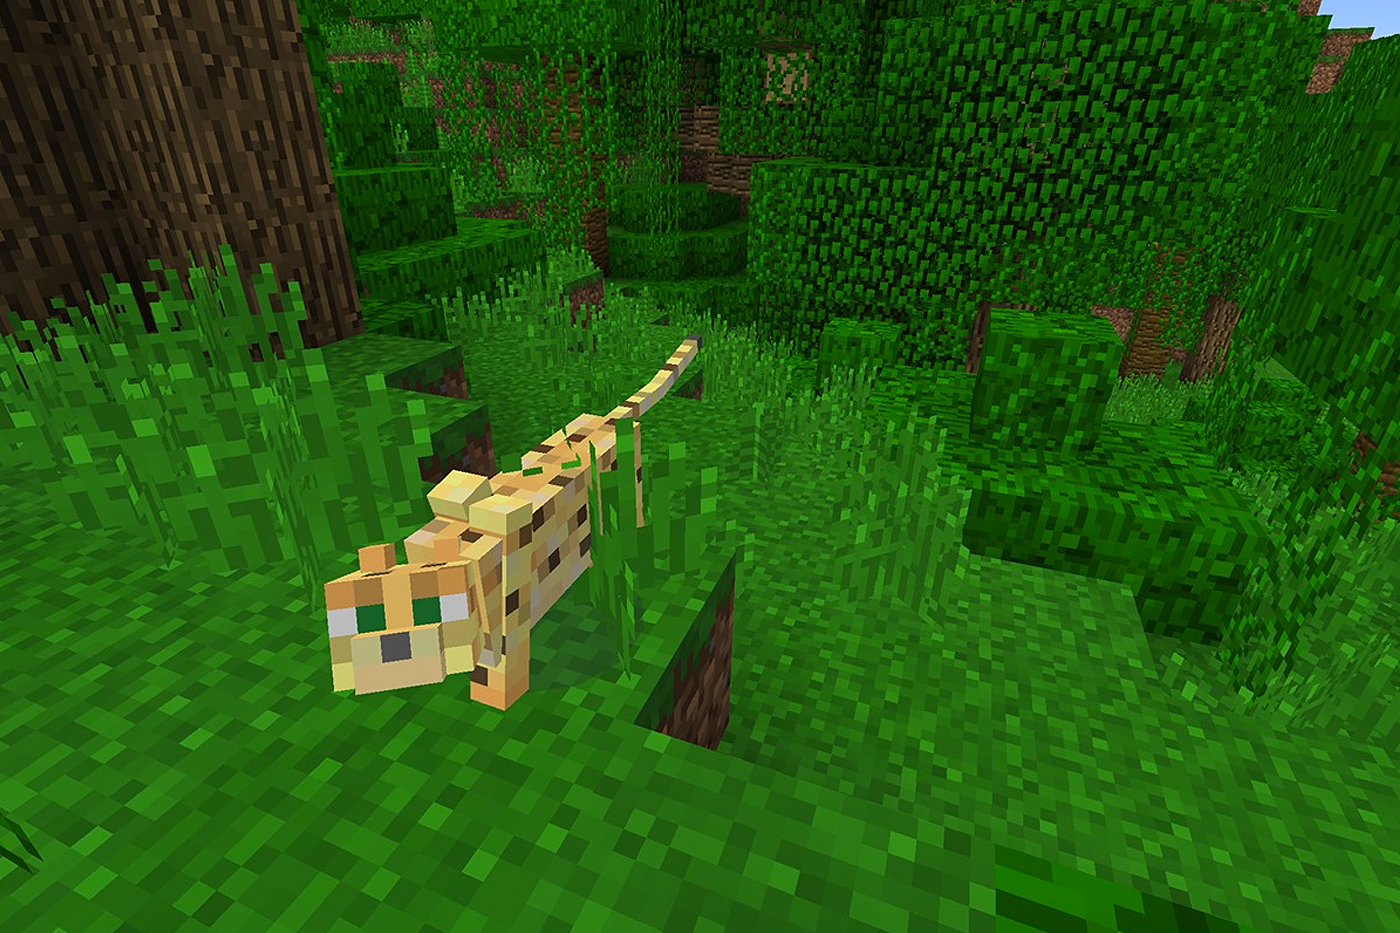 Minecraft VR - Leopard in Grass